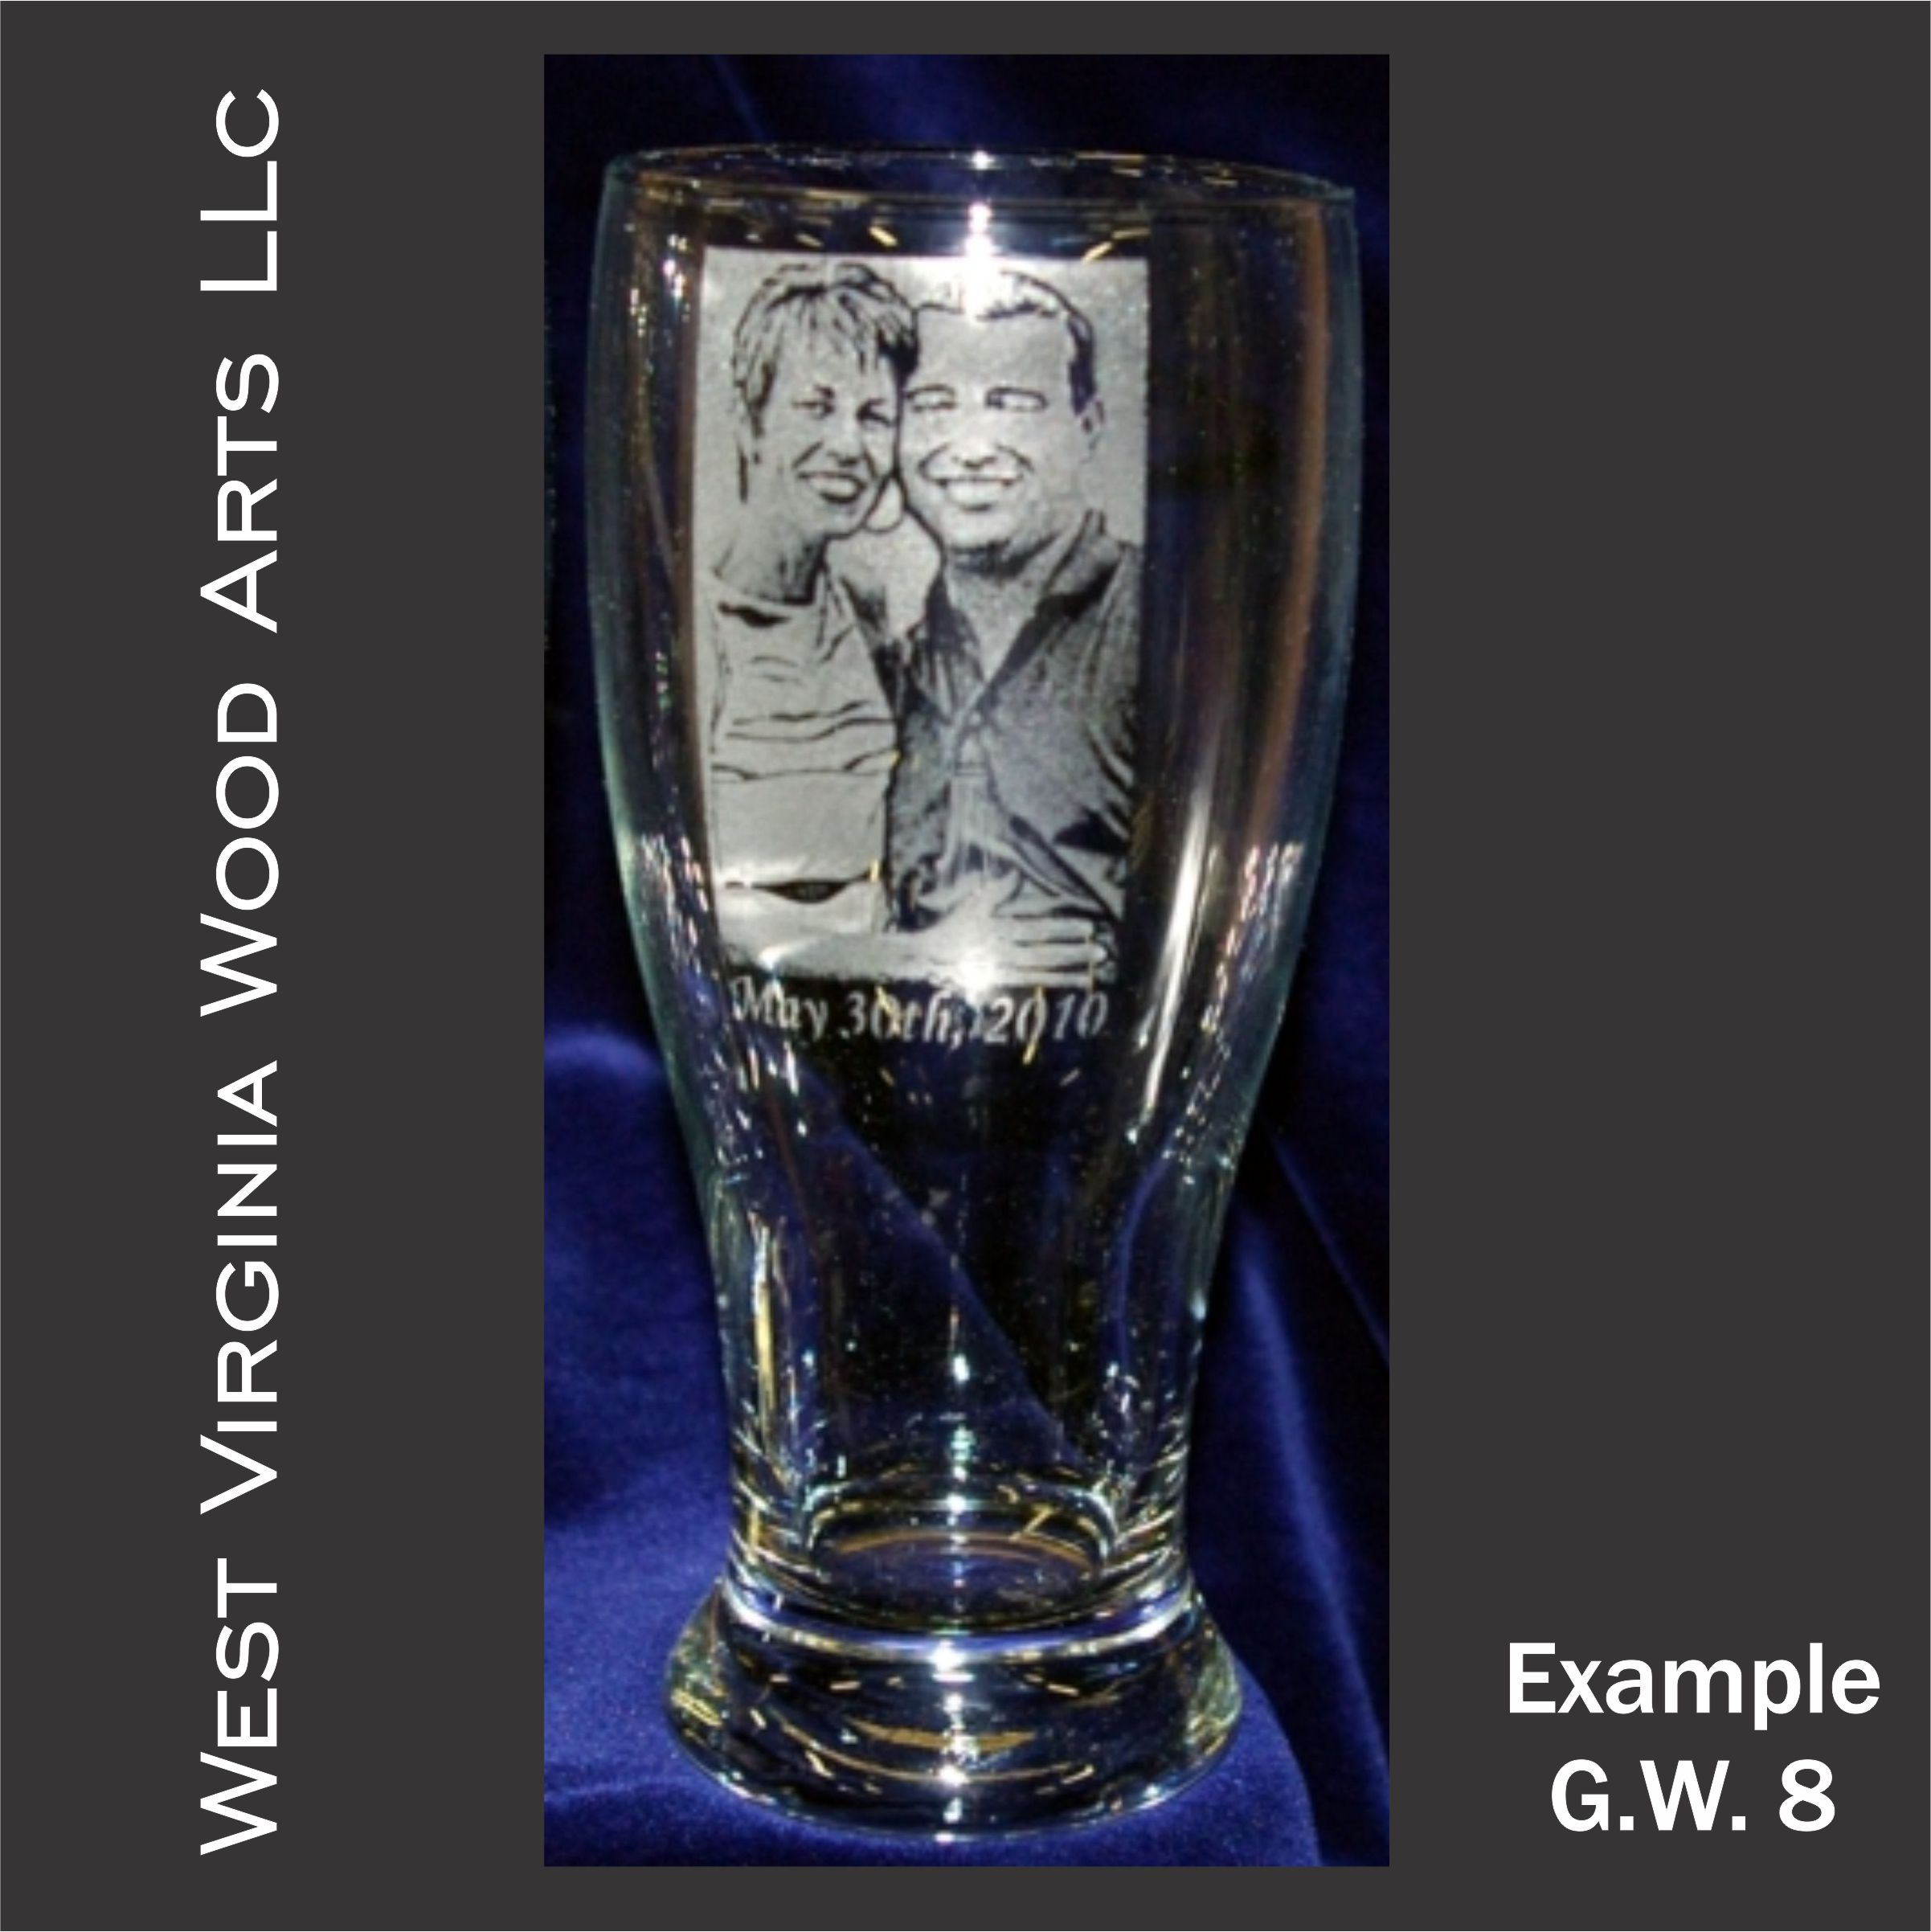 Personalized glassware main example with photo engraving